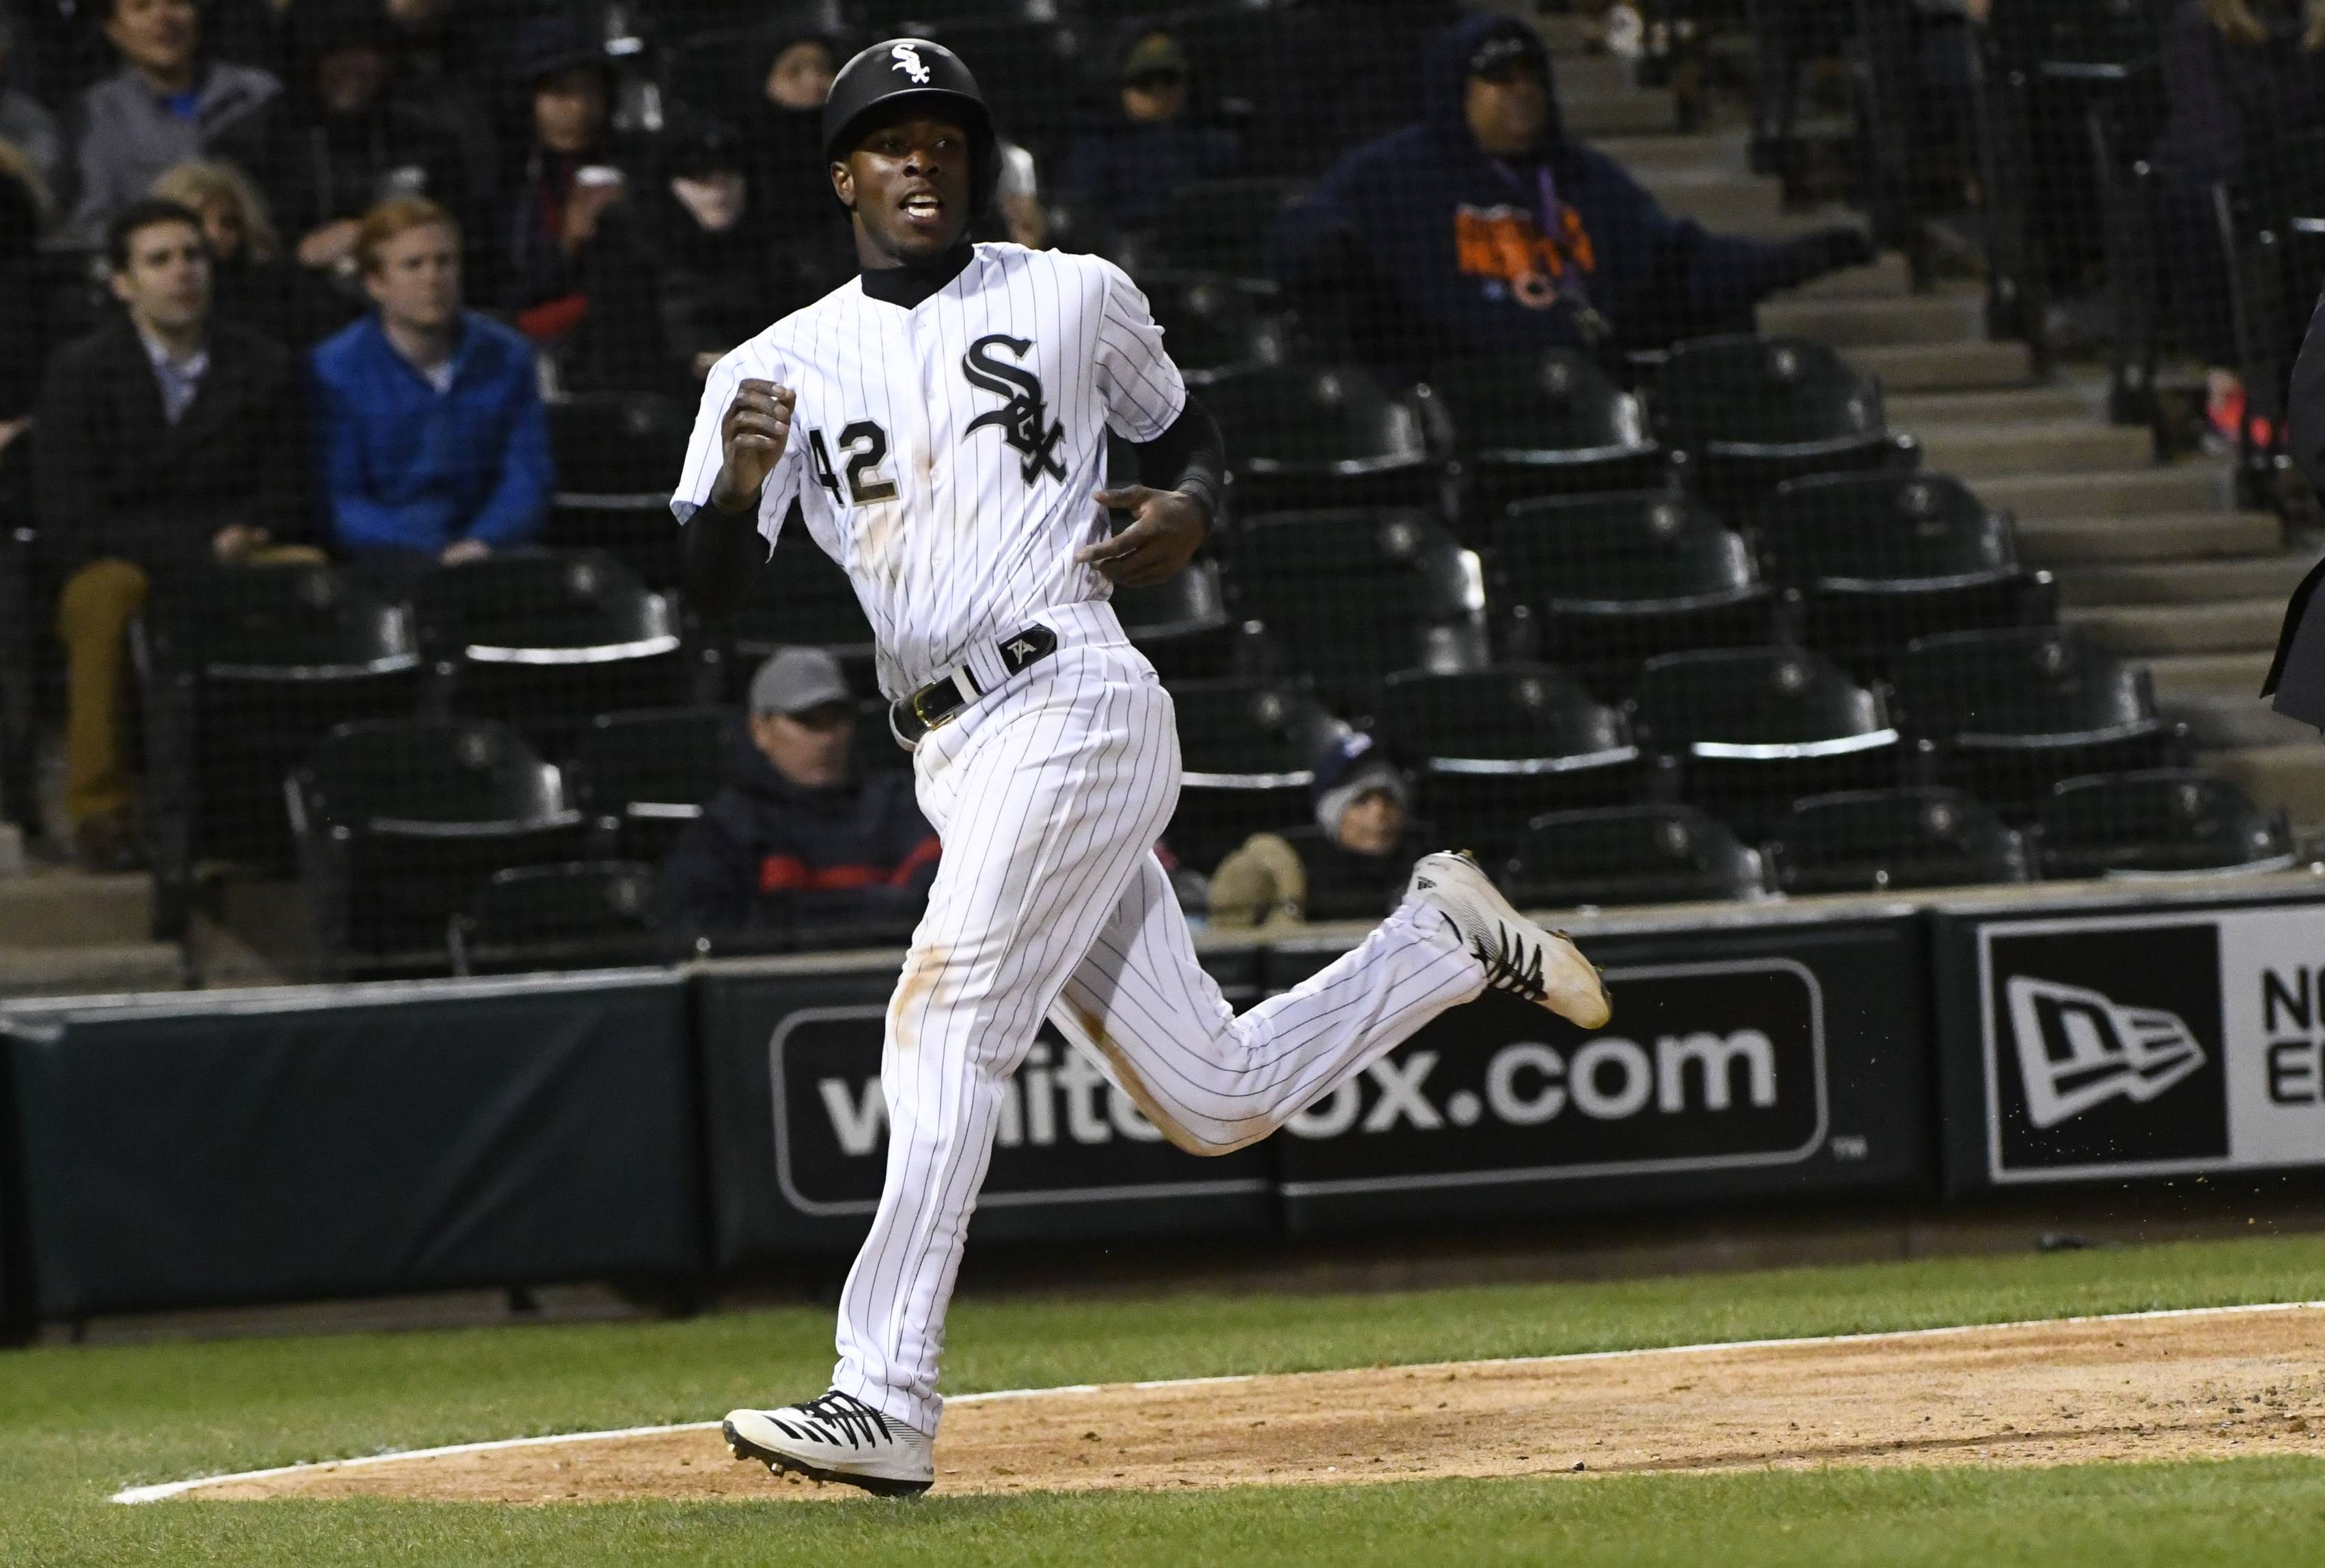 Chicago White Sox's Tim Anderson scores during the fifth inning of a baseball game against the Kansas City Royals, Monday, April 15, 2019, in Chicago.